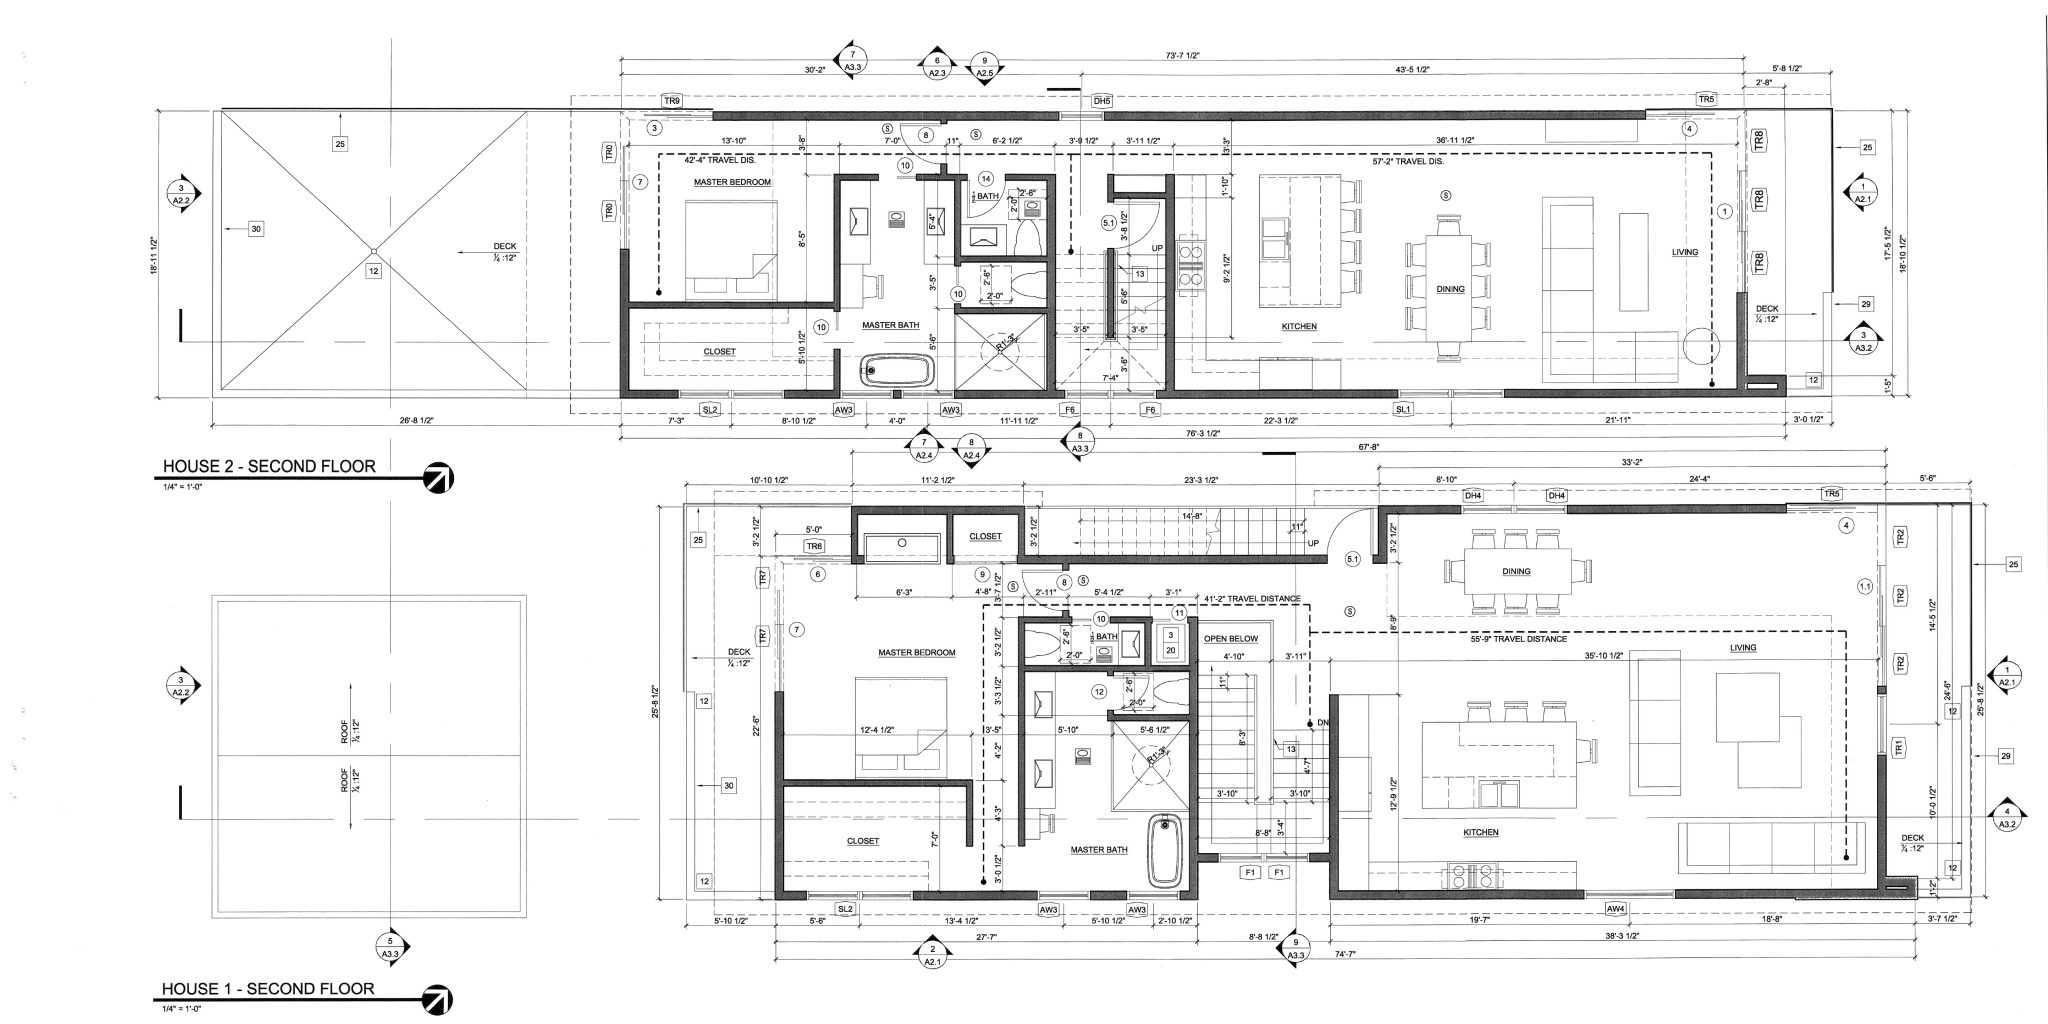 House 1 and 2 Second Floor